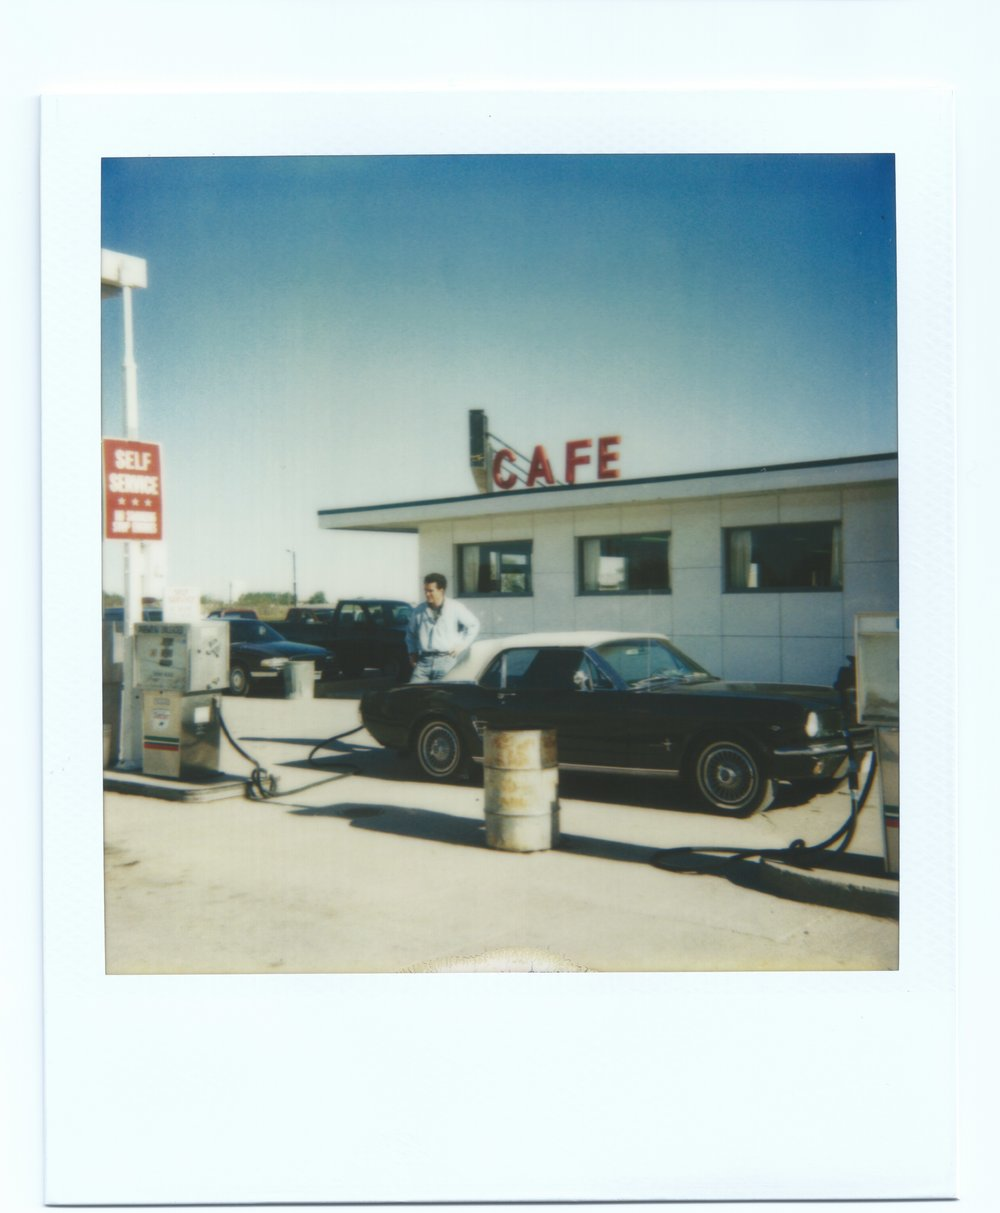 Car_GasStationCafe.jpeg